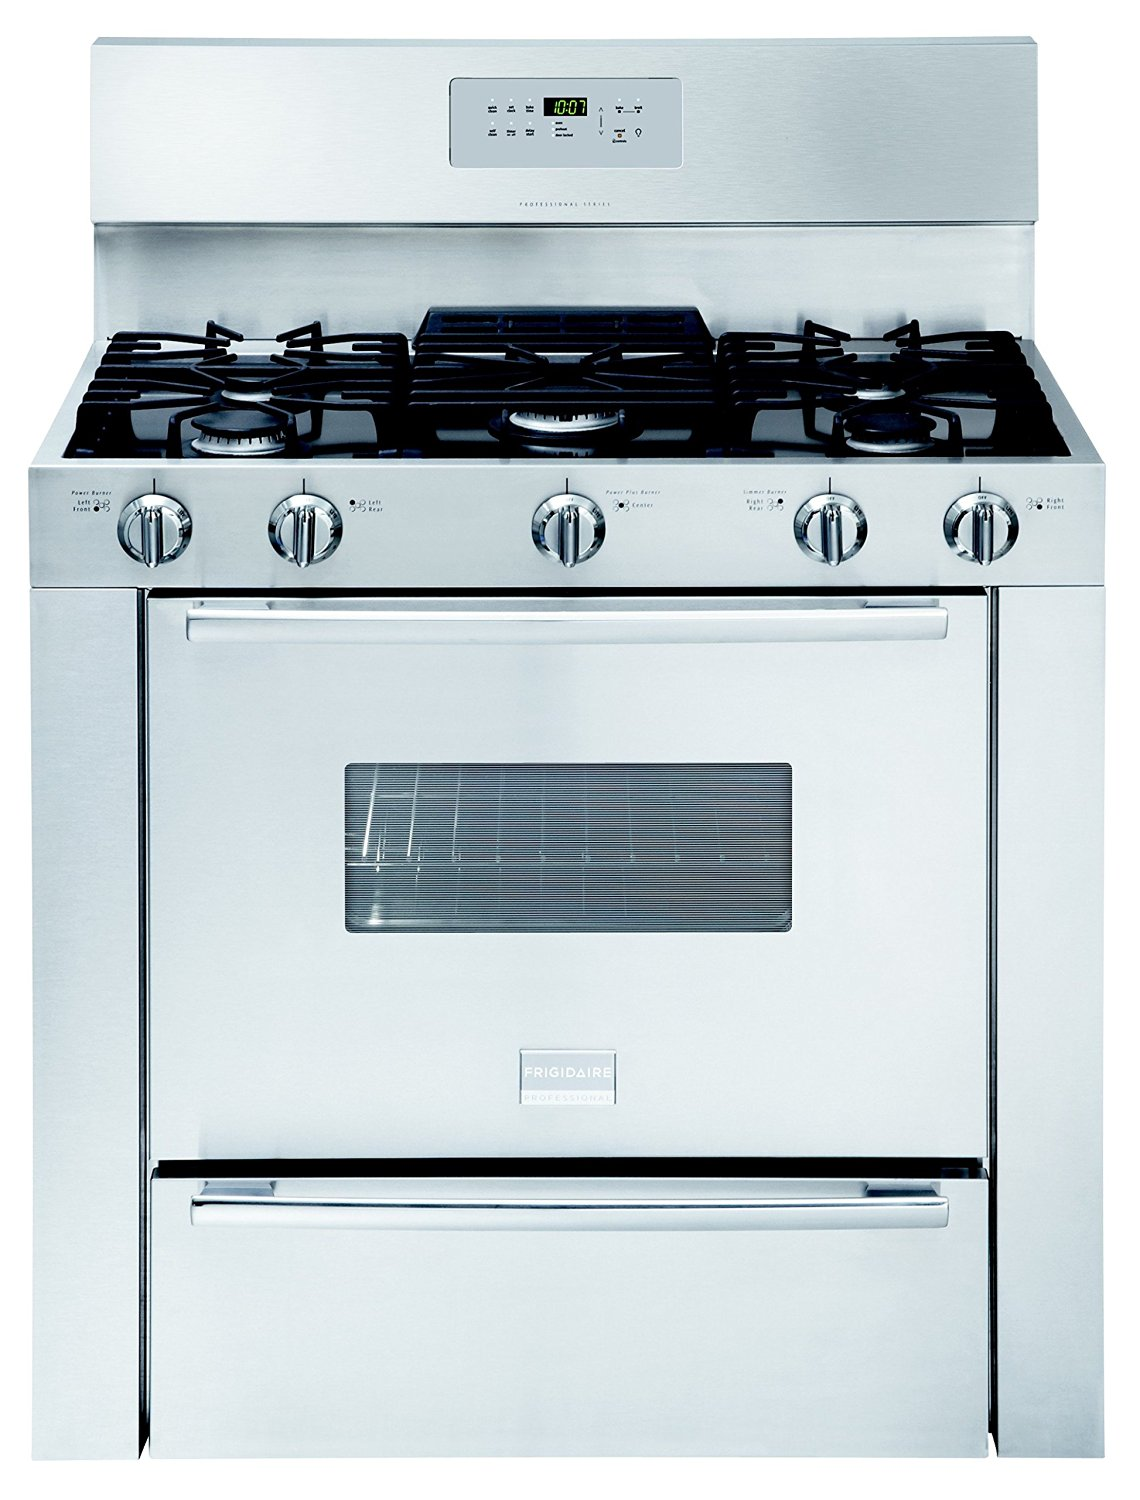 Best Frigidaire Stove Reviews — Top 10 Models to Consider in 2020